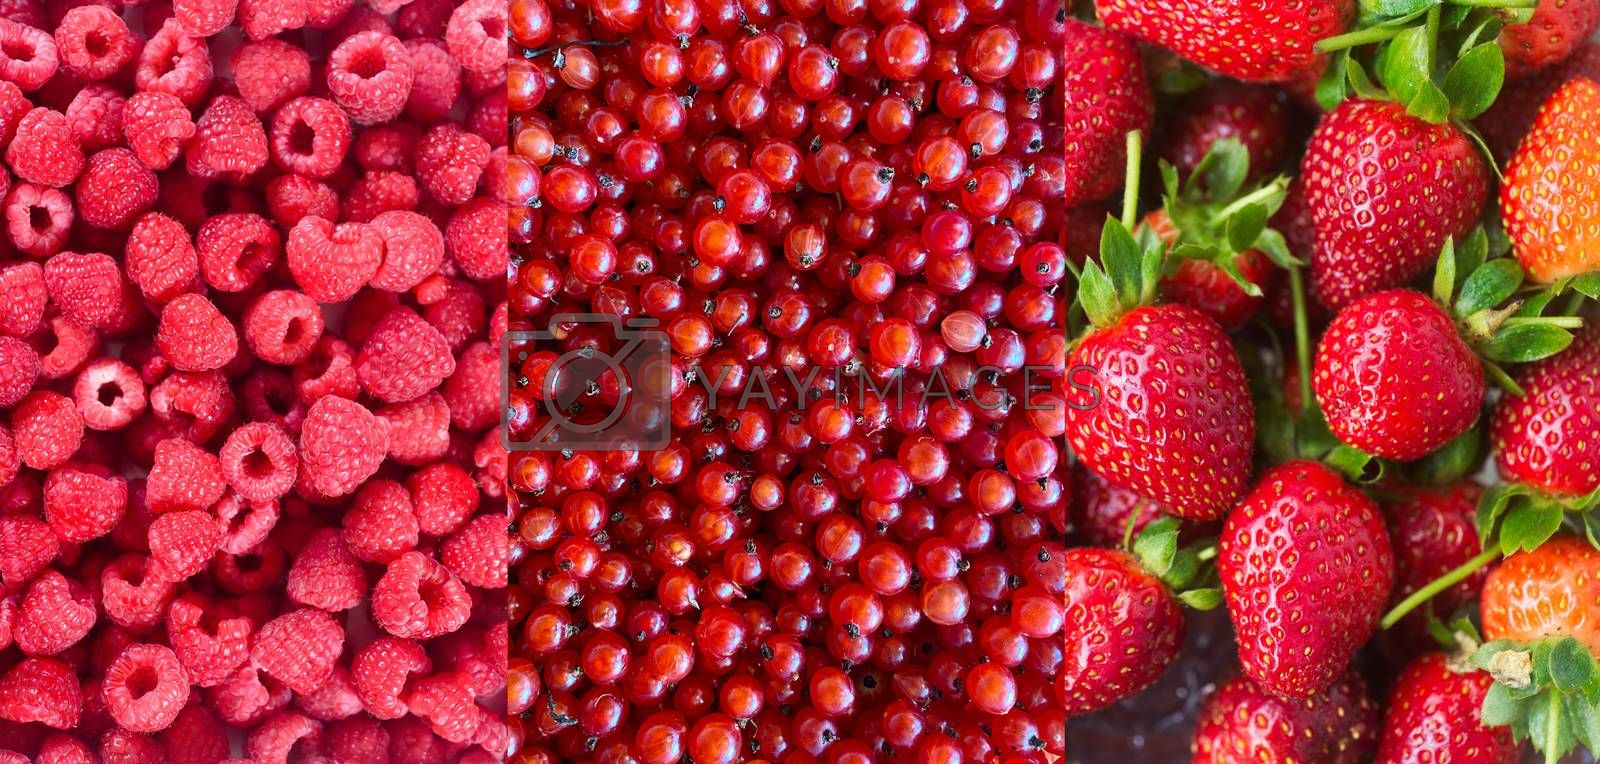 Collection of varios Ripe juicy red berries currant, raspberry and strawberry background. Natural food berries. Healthy food organic concept.